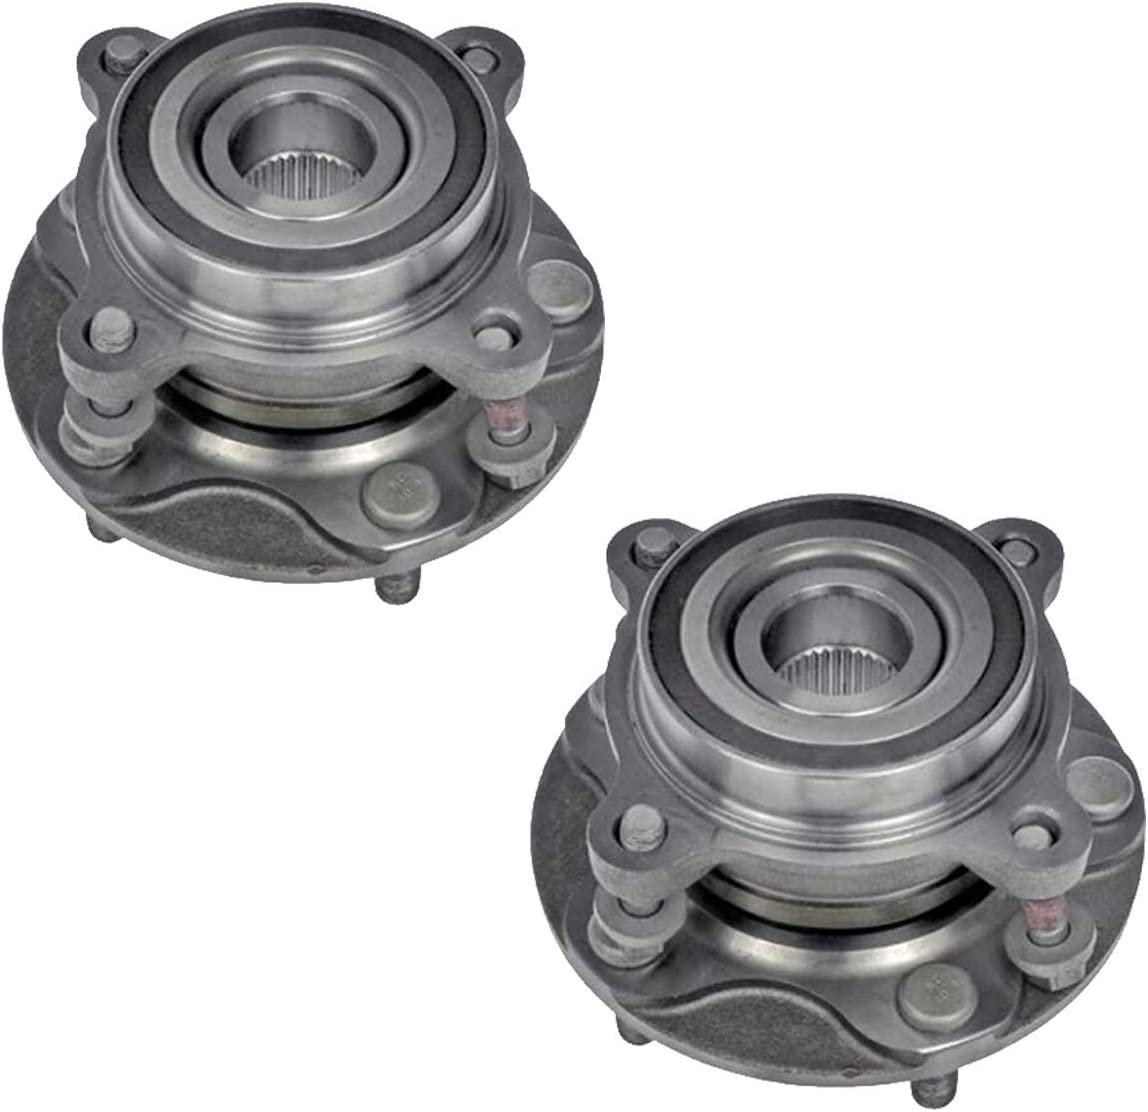 4WD Models ONLY 2008-2018 Toyota Sequoia 2007-2018 Toyota Tundra QJZ 1-Pack Front Driver or Passenger Side Wheel Hub Bearing Assembly for 950-002